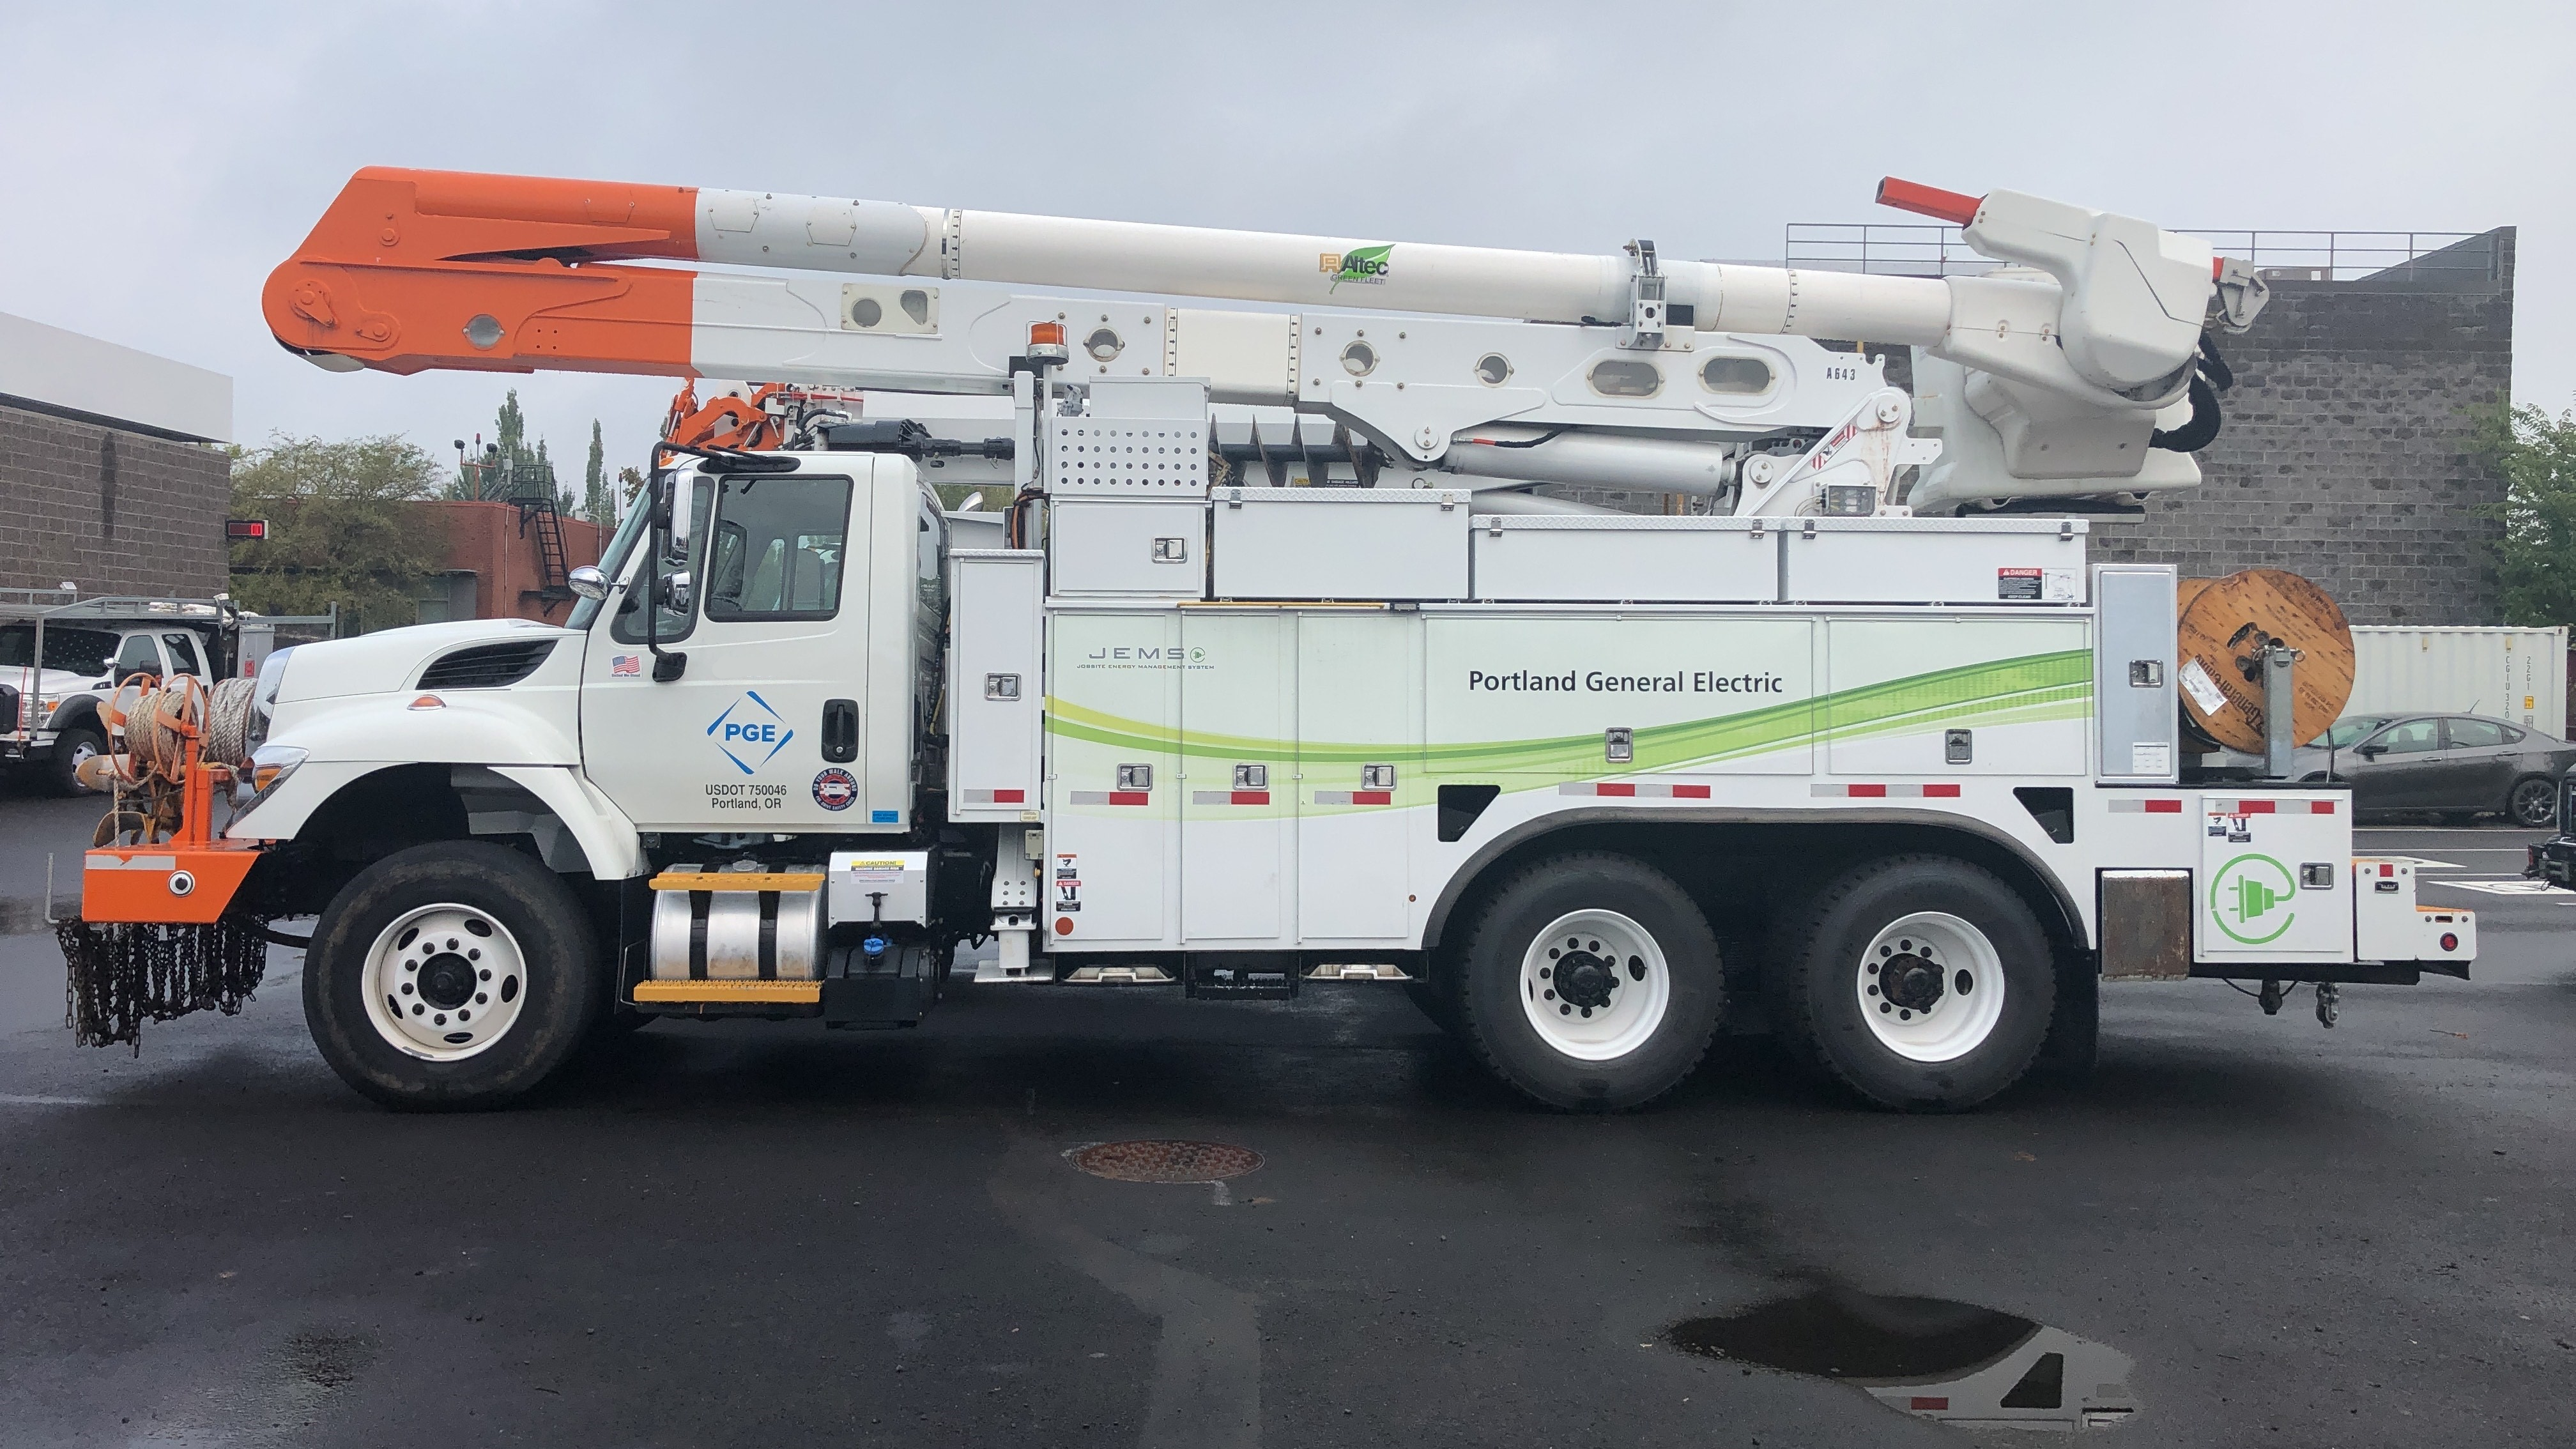 Portland General Electric's electric bucket truck